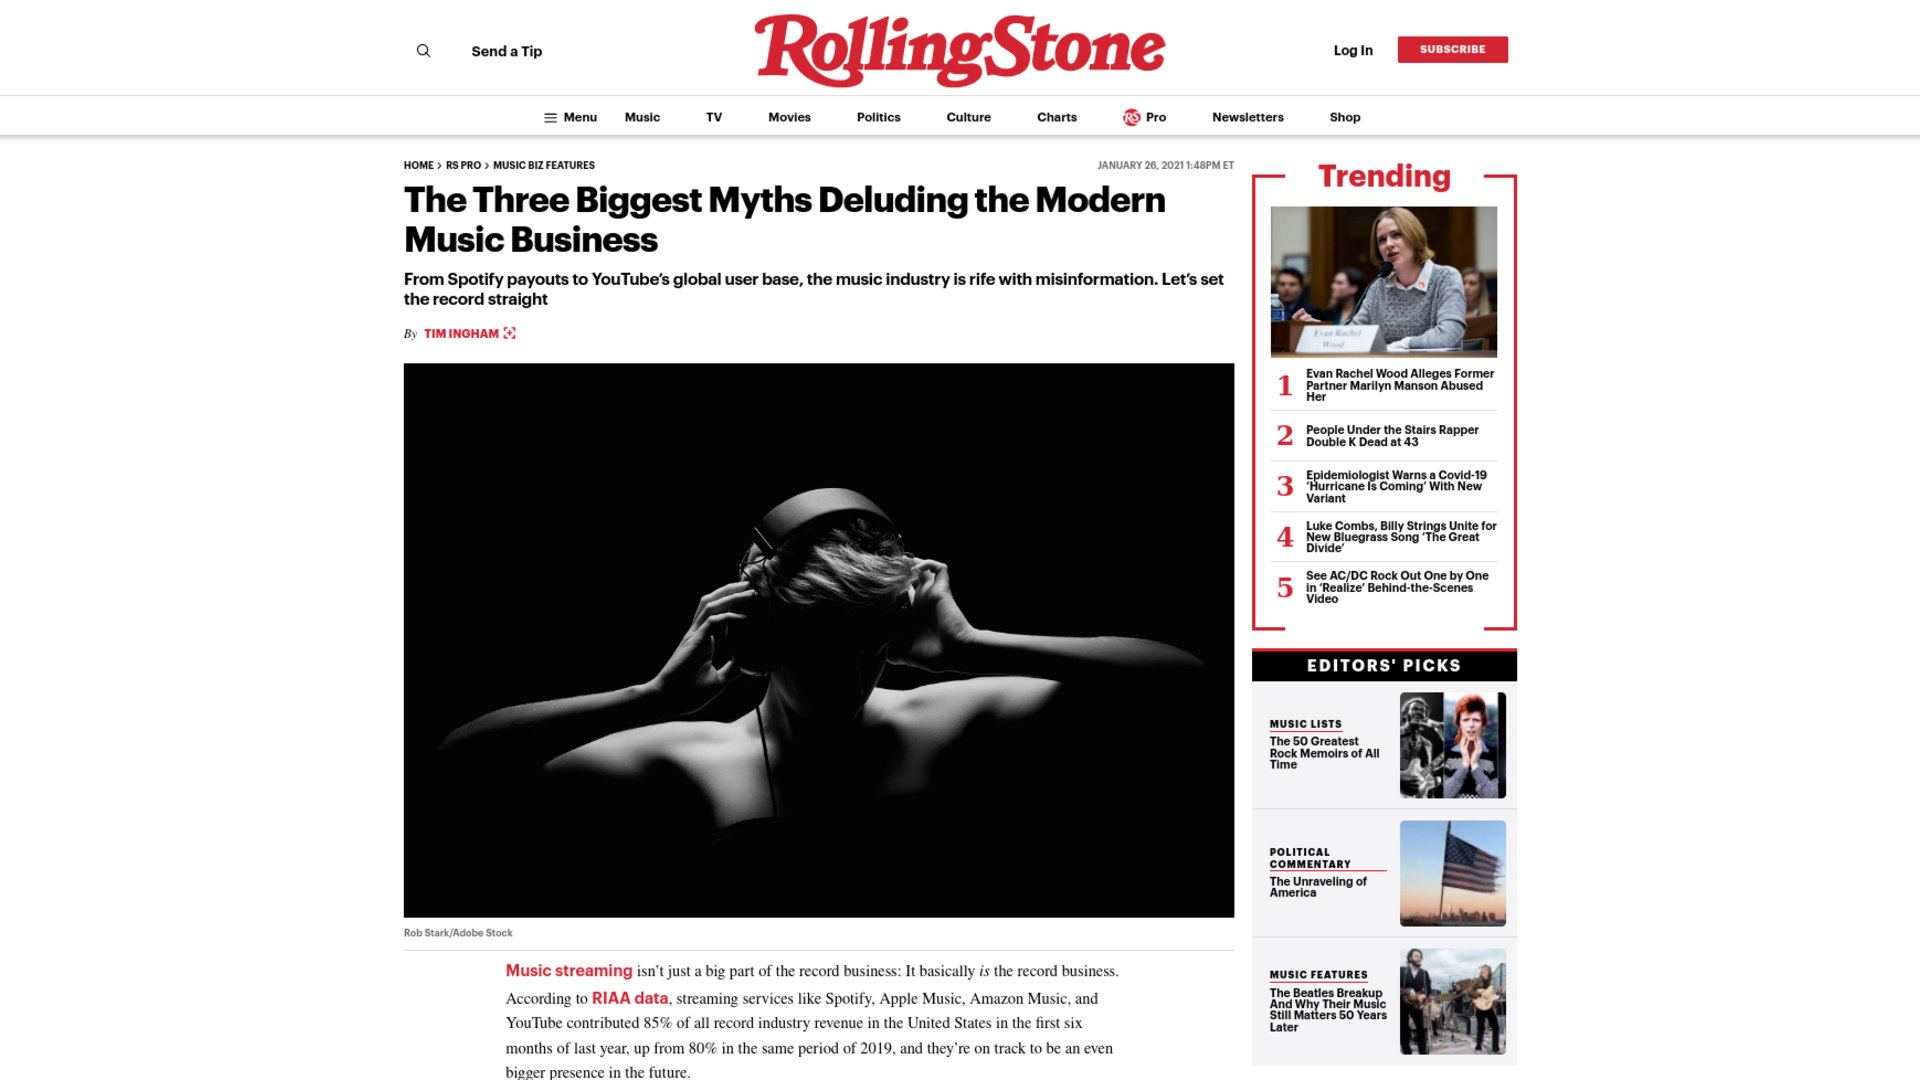 Fairness Rocks News The Three Biggest Myths Deluding the Modern Music Business